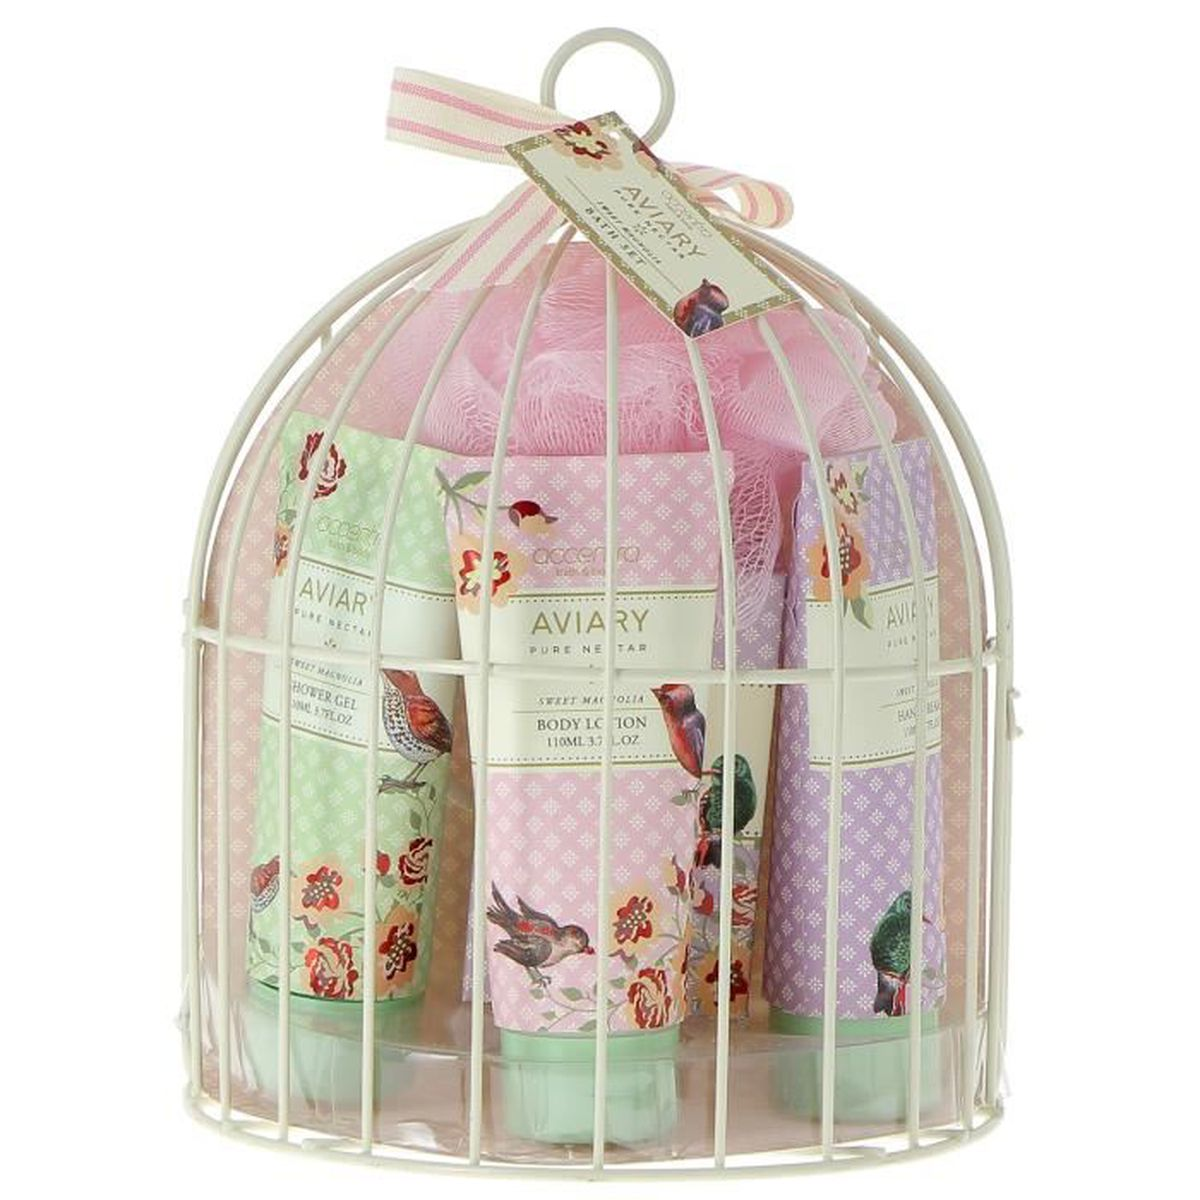 coffret aviary parfum magnolia dans demie cage en m tal oiseaux soin du corps id e cadeau. Black Bedroom Furniture Sets. Home Design Ideas